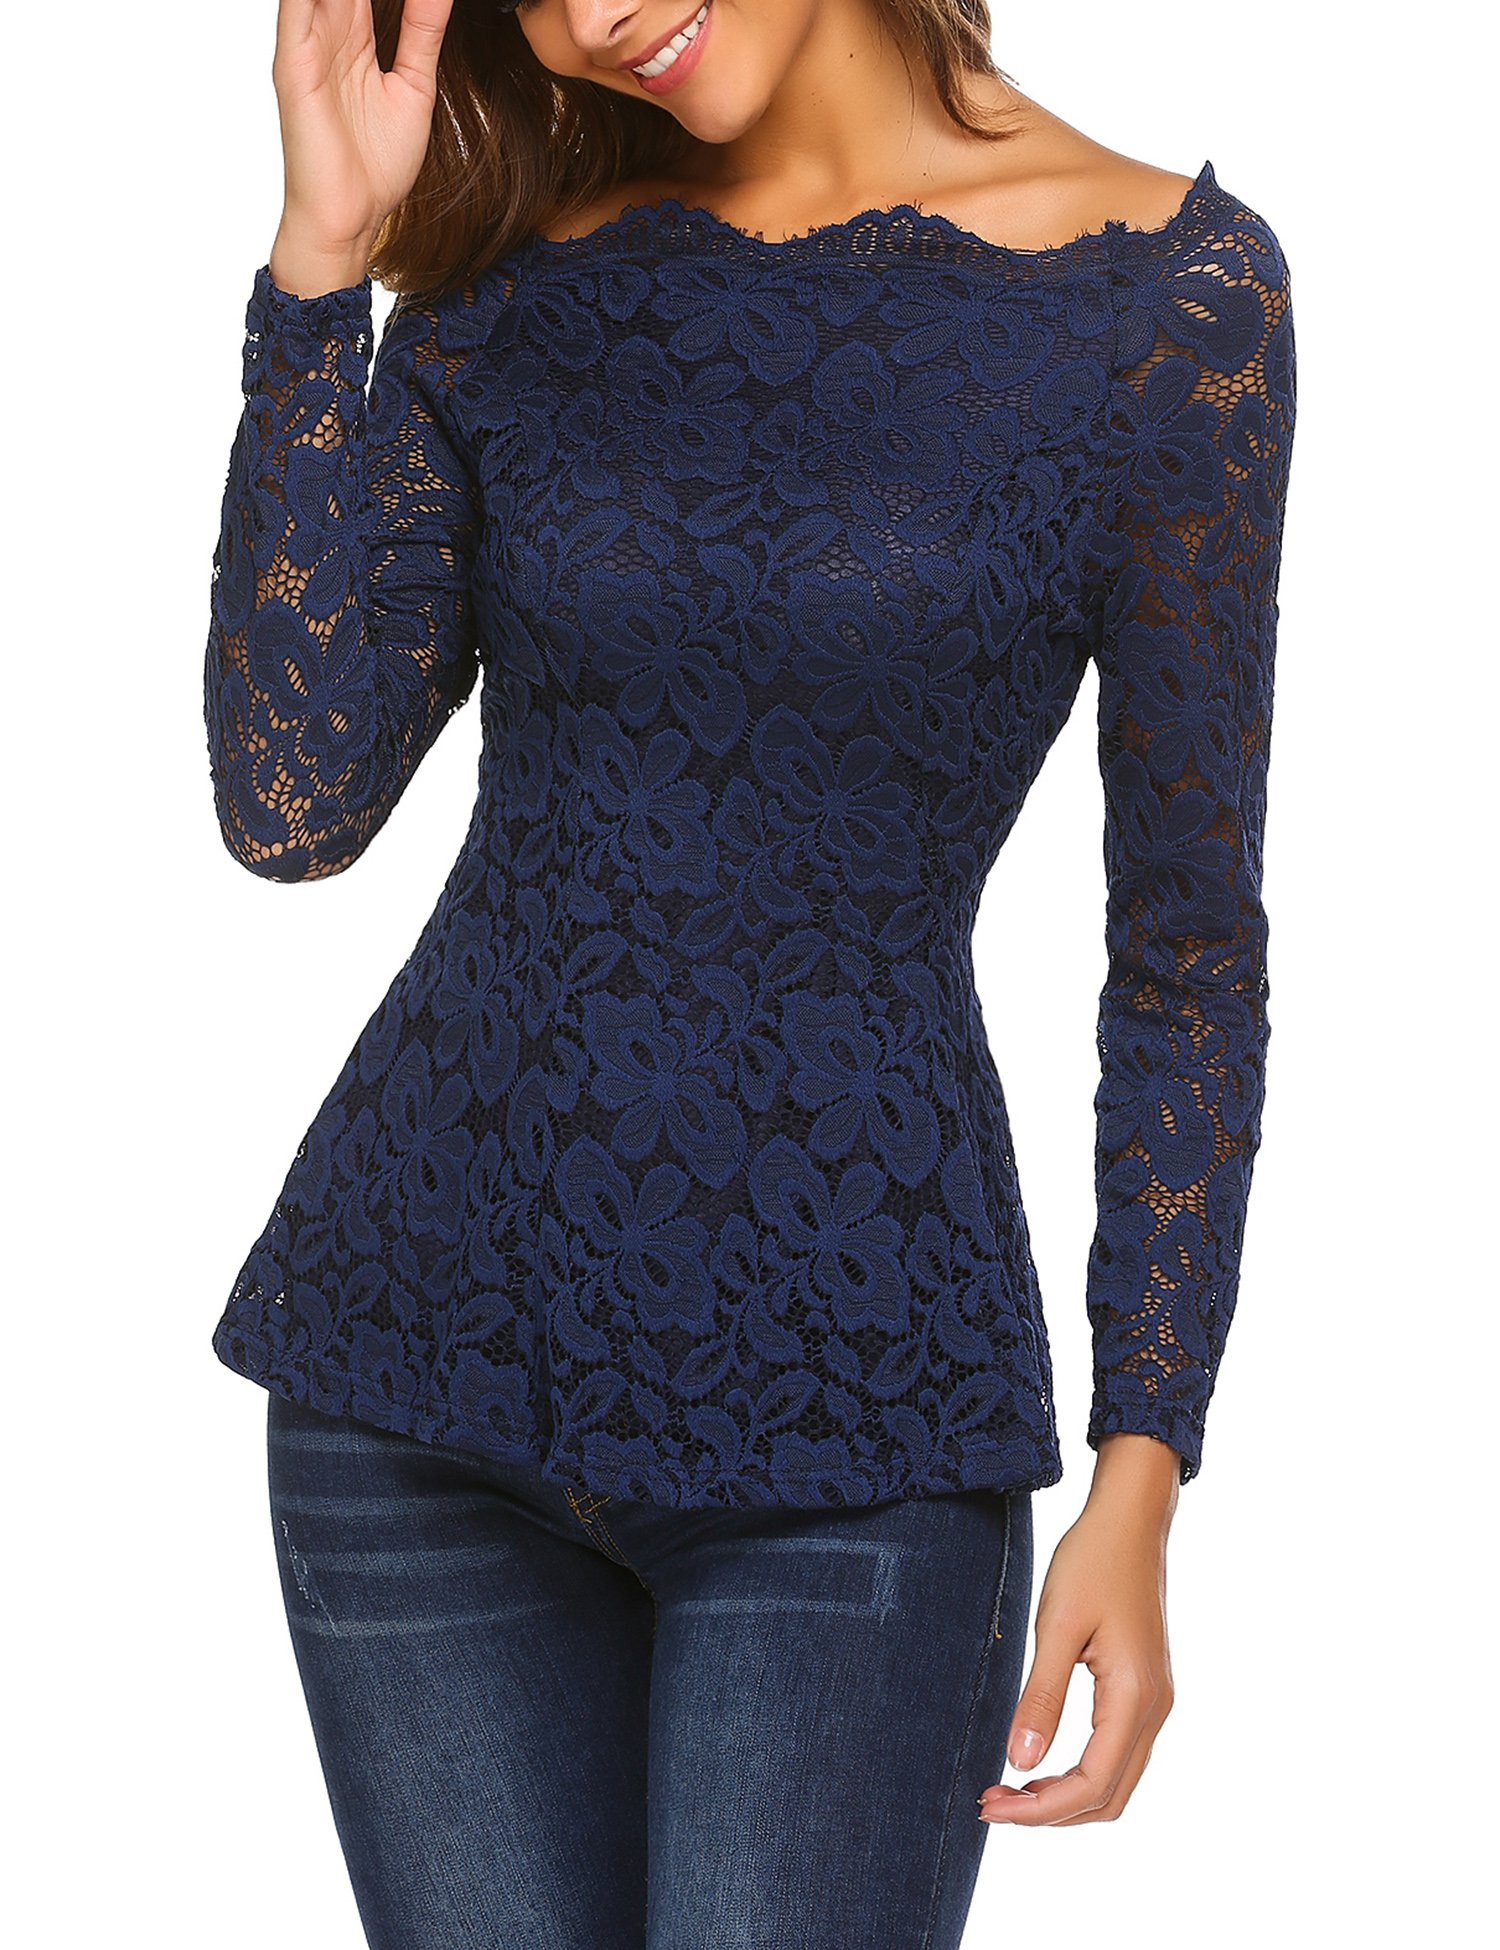 bubblebelle Women's Floral Lace Crochet Off The Shoulder Peplum Blouse Top Navy Blue L